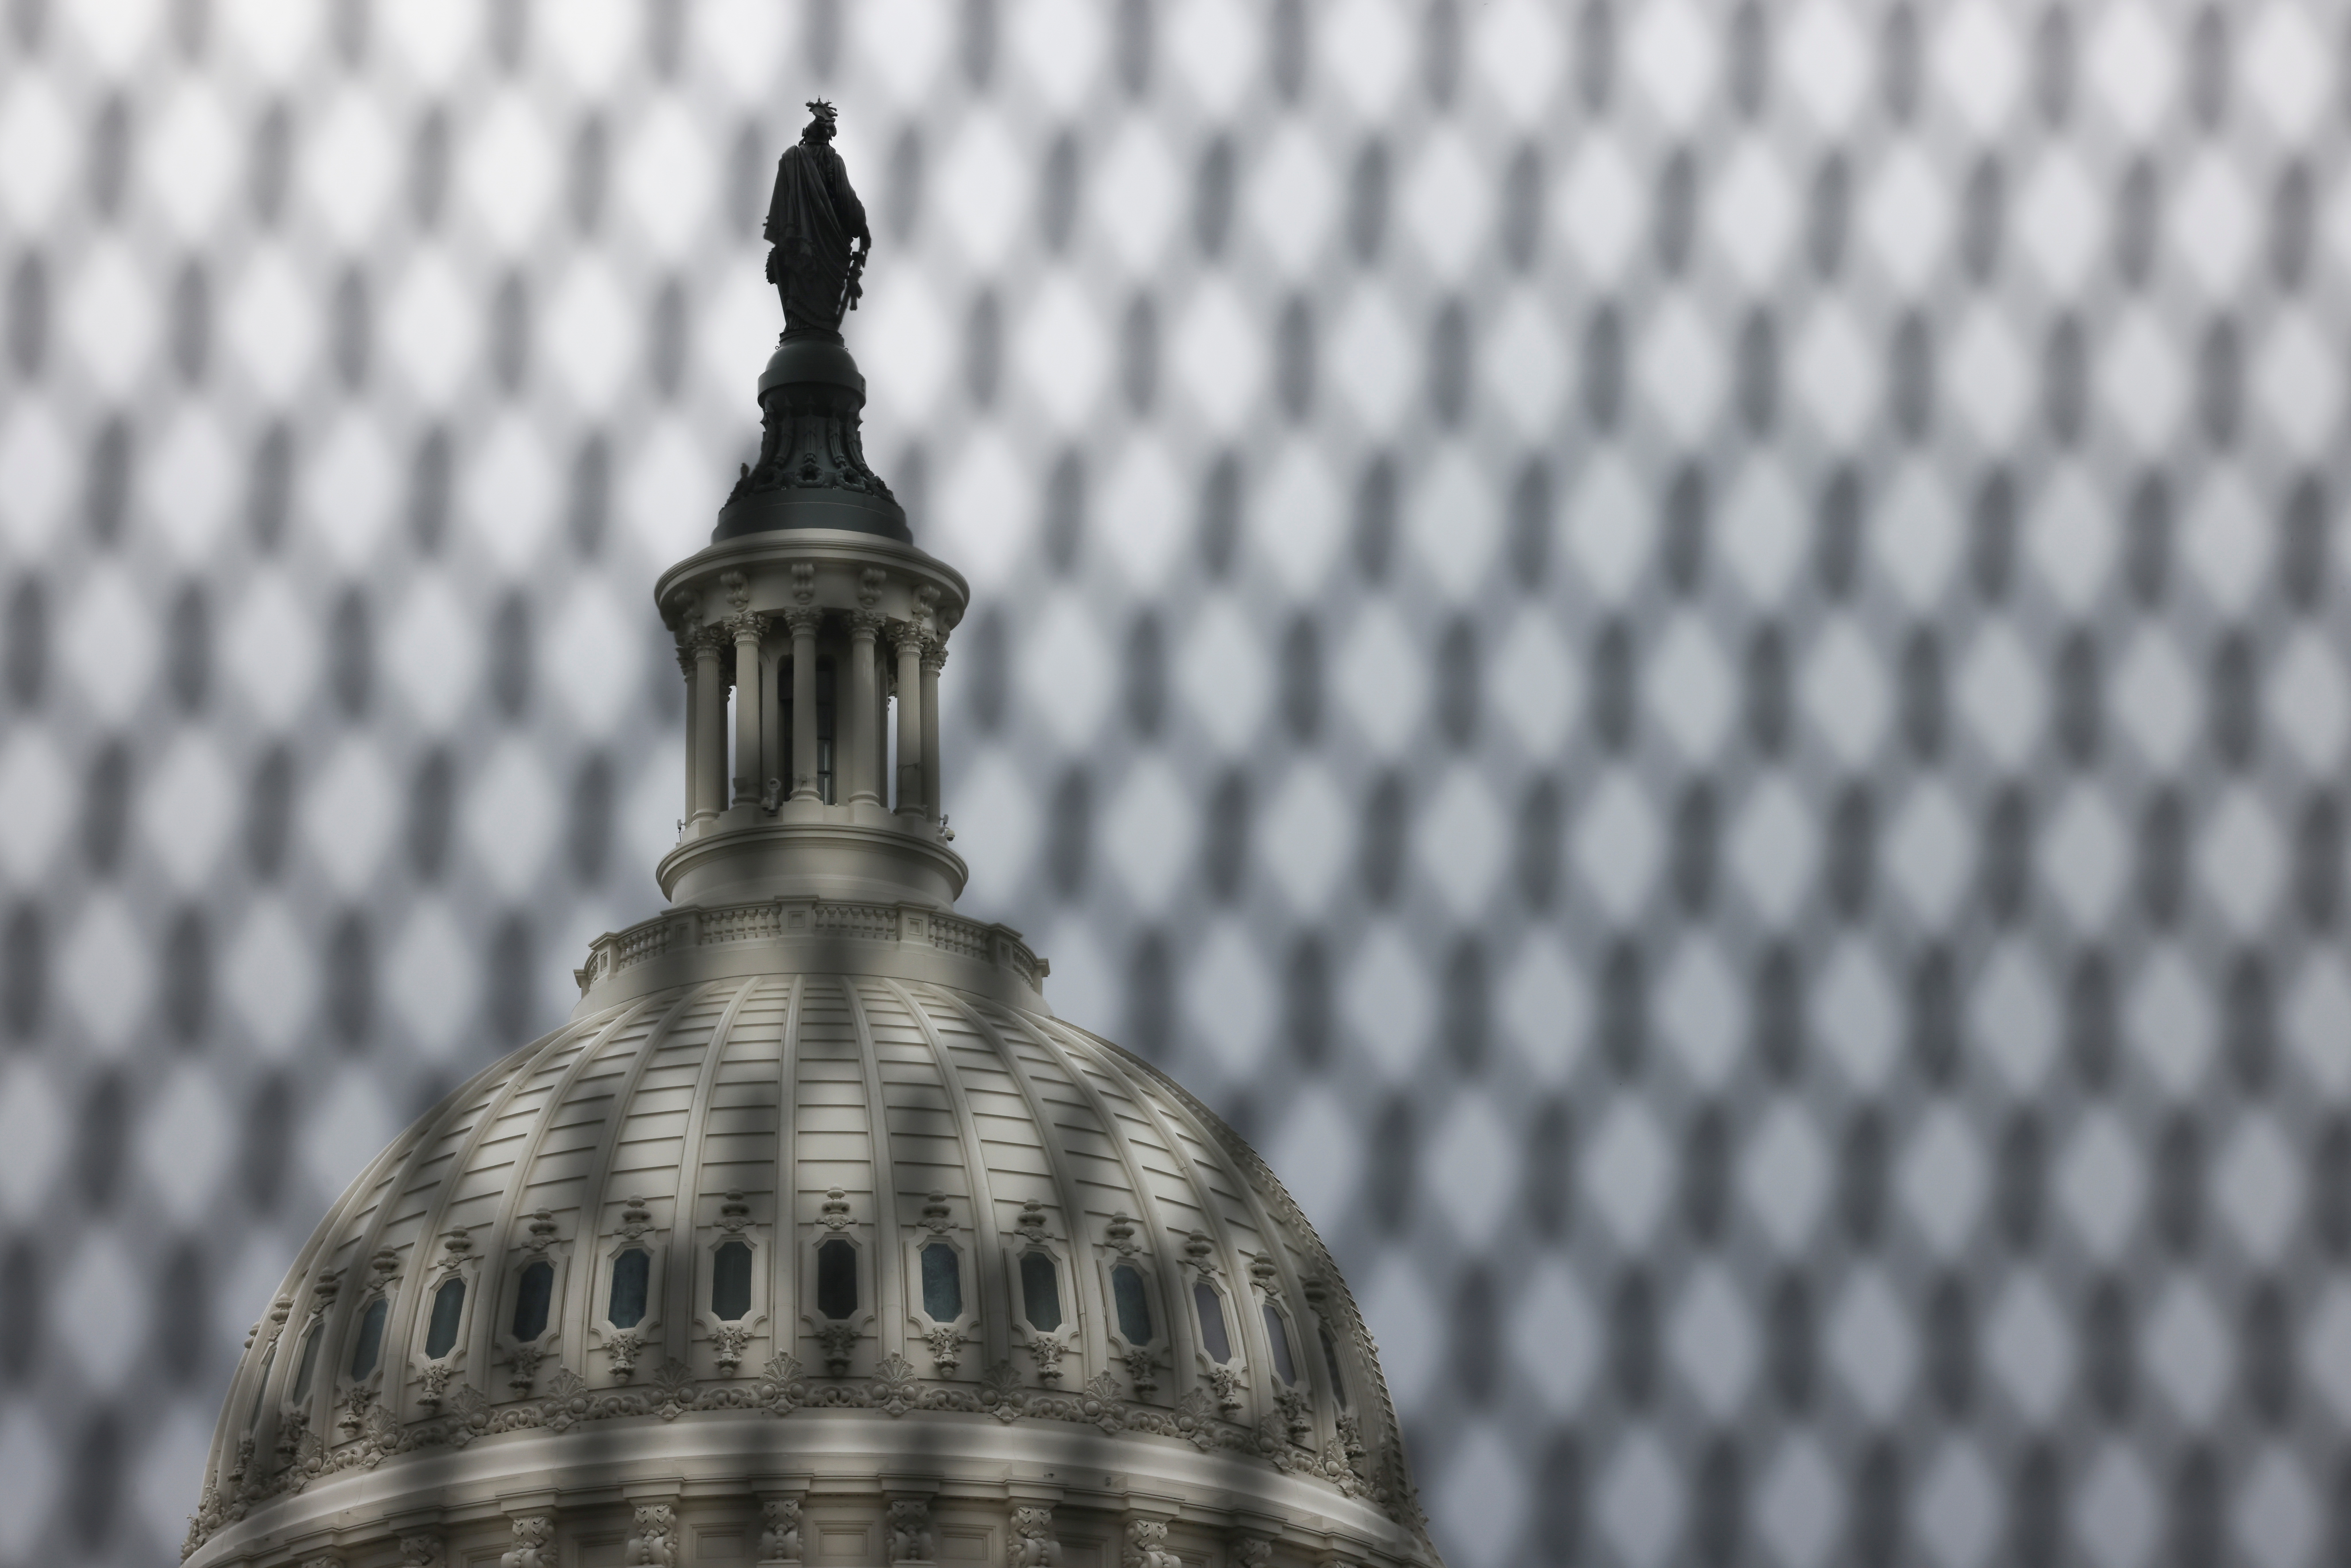 The U.S. Capitol building is seen behind security fencing that has been up around the building since shortly after the January 6, 2021 siege on Capitol Hill in Washington, May 28, 2021.  REUTERS/Evelyn Hockstein